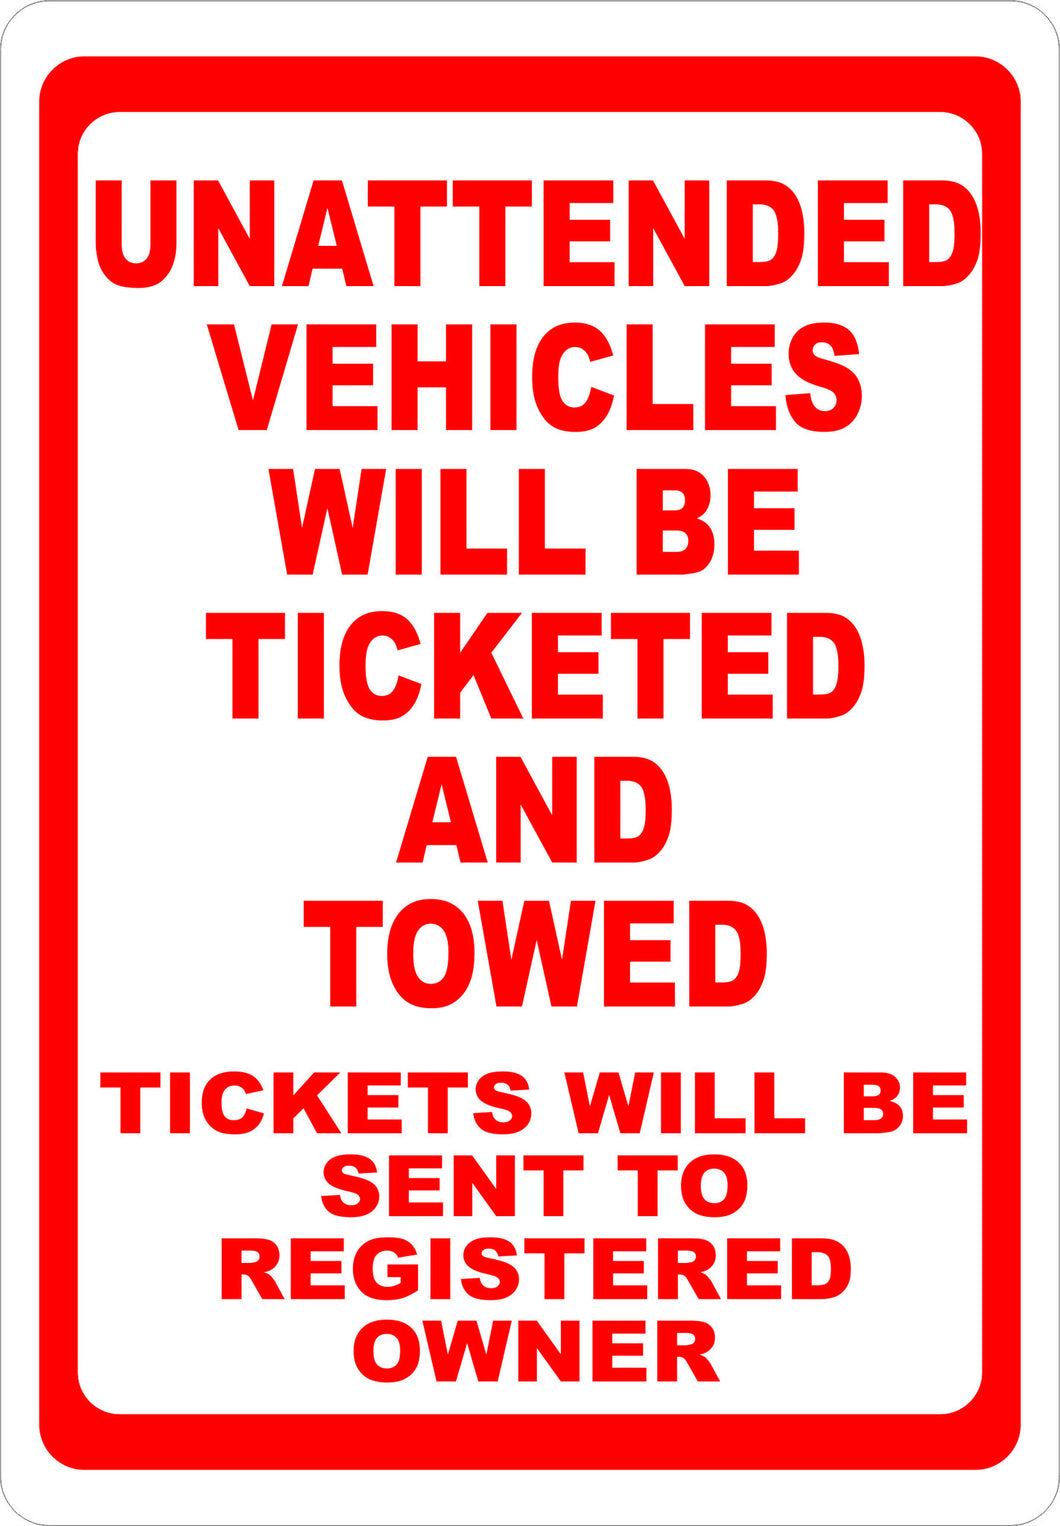 Unattended Vehicles Will Be Ticketed and Towed Sign - Signs & Decals by SalaGraphics